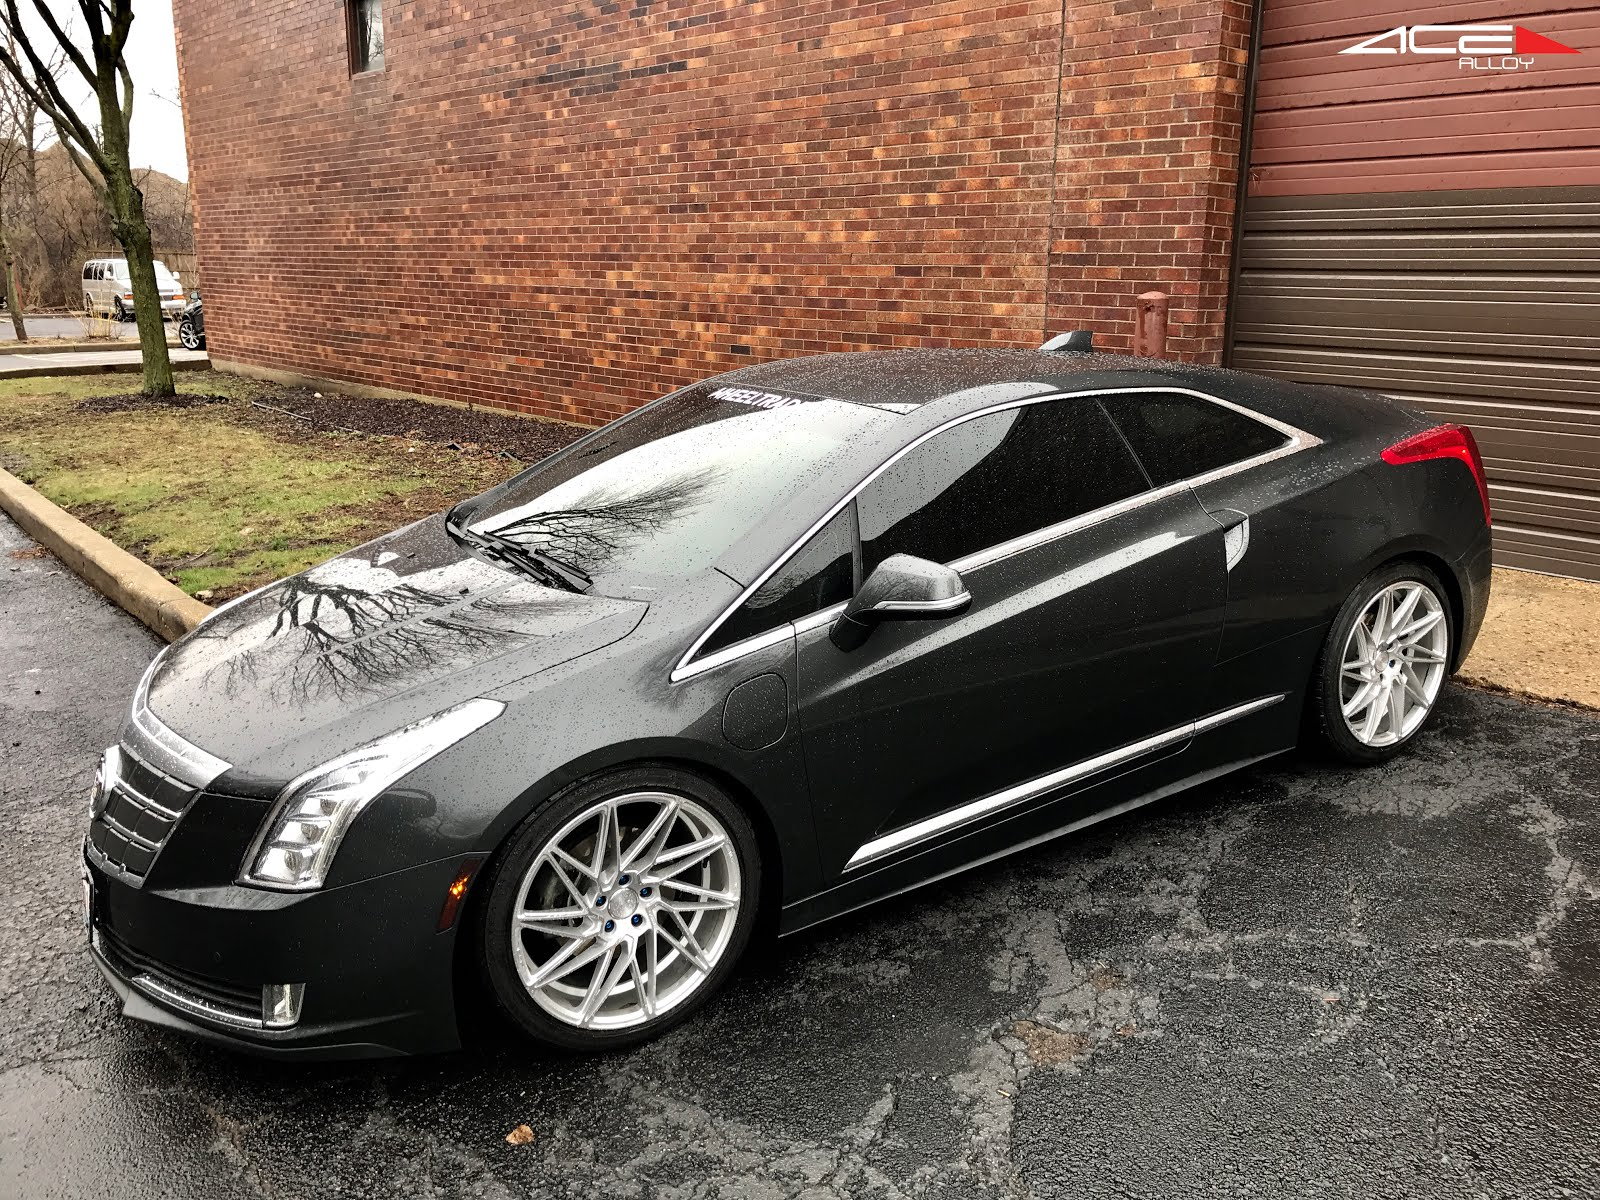 cadillac img wheels classic laferriere listings cars